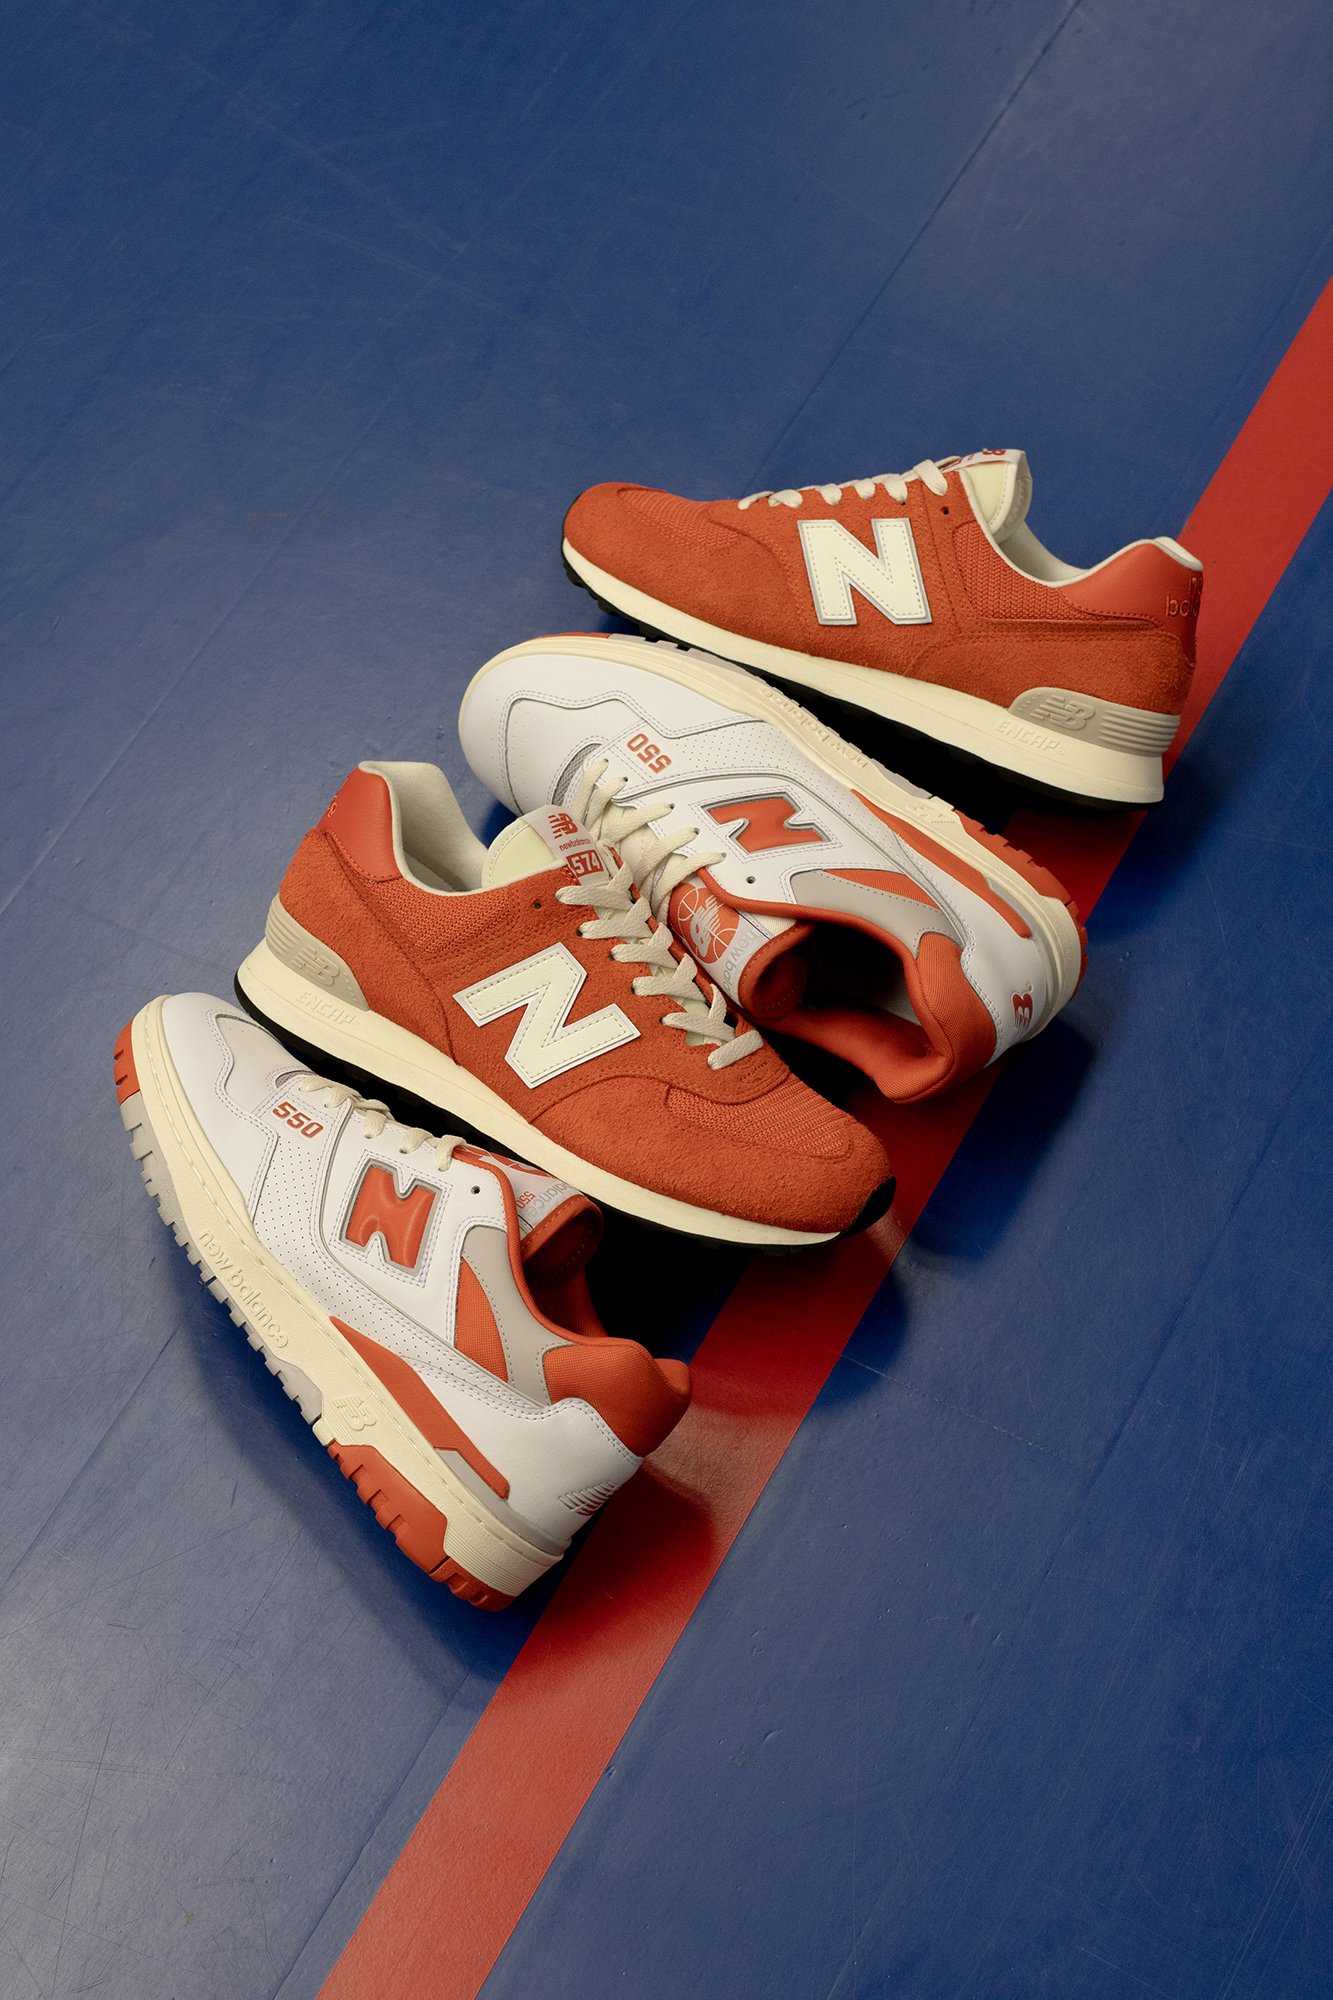 New Balance 'College Pack' – size? Exclusive